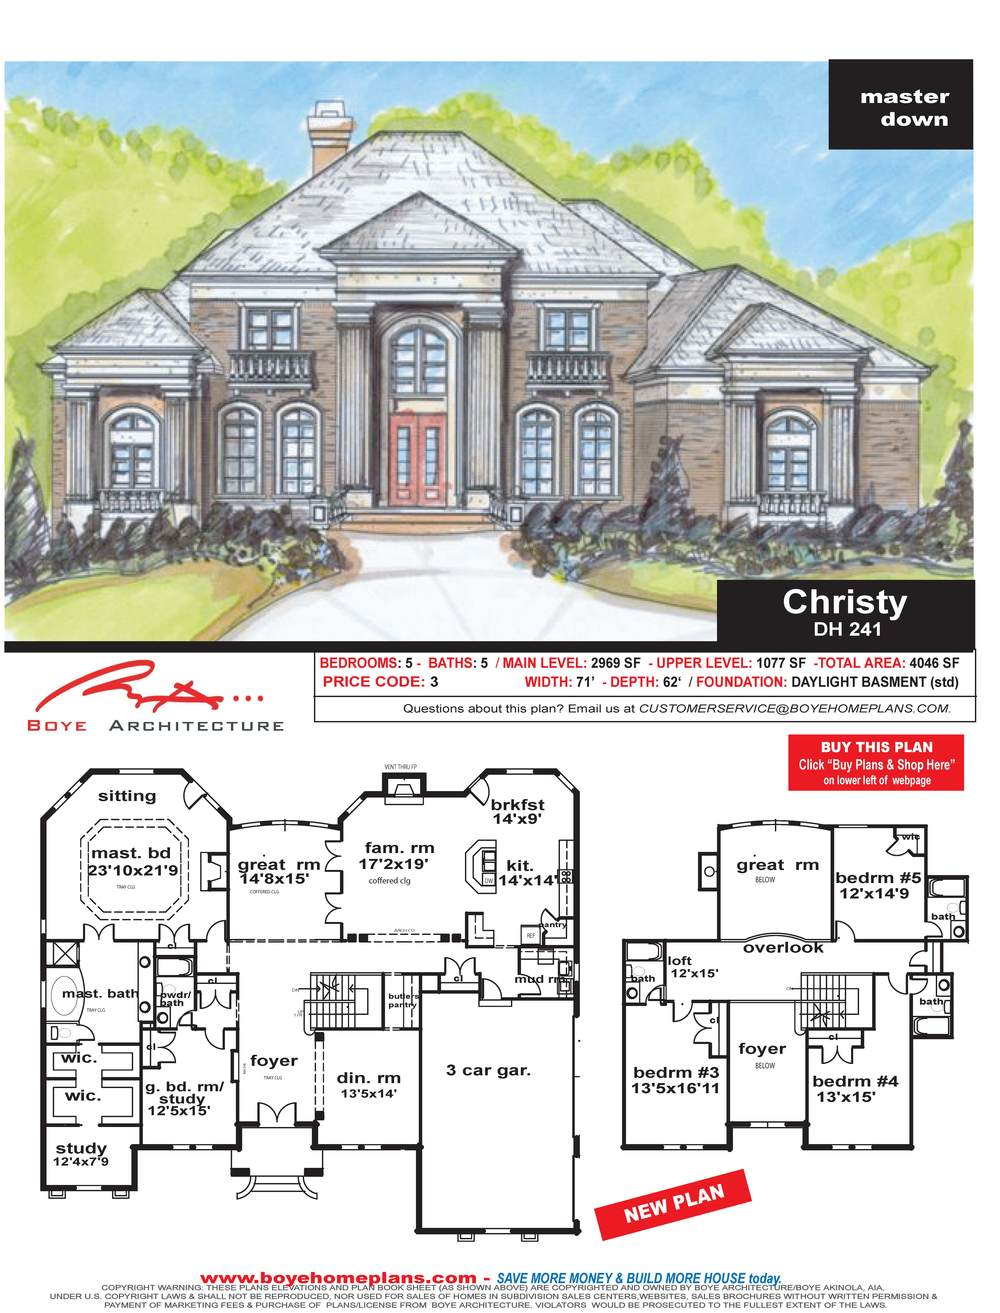 CHRISTY PLAN PAGE-D241-122909.jpg